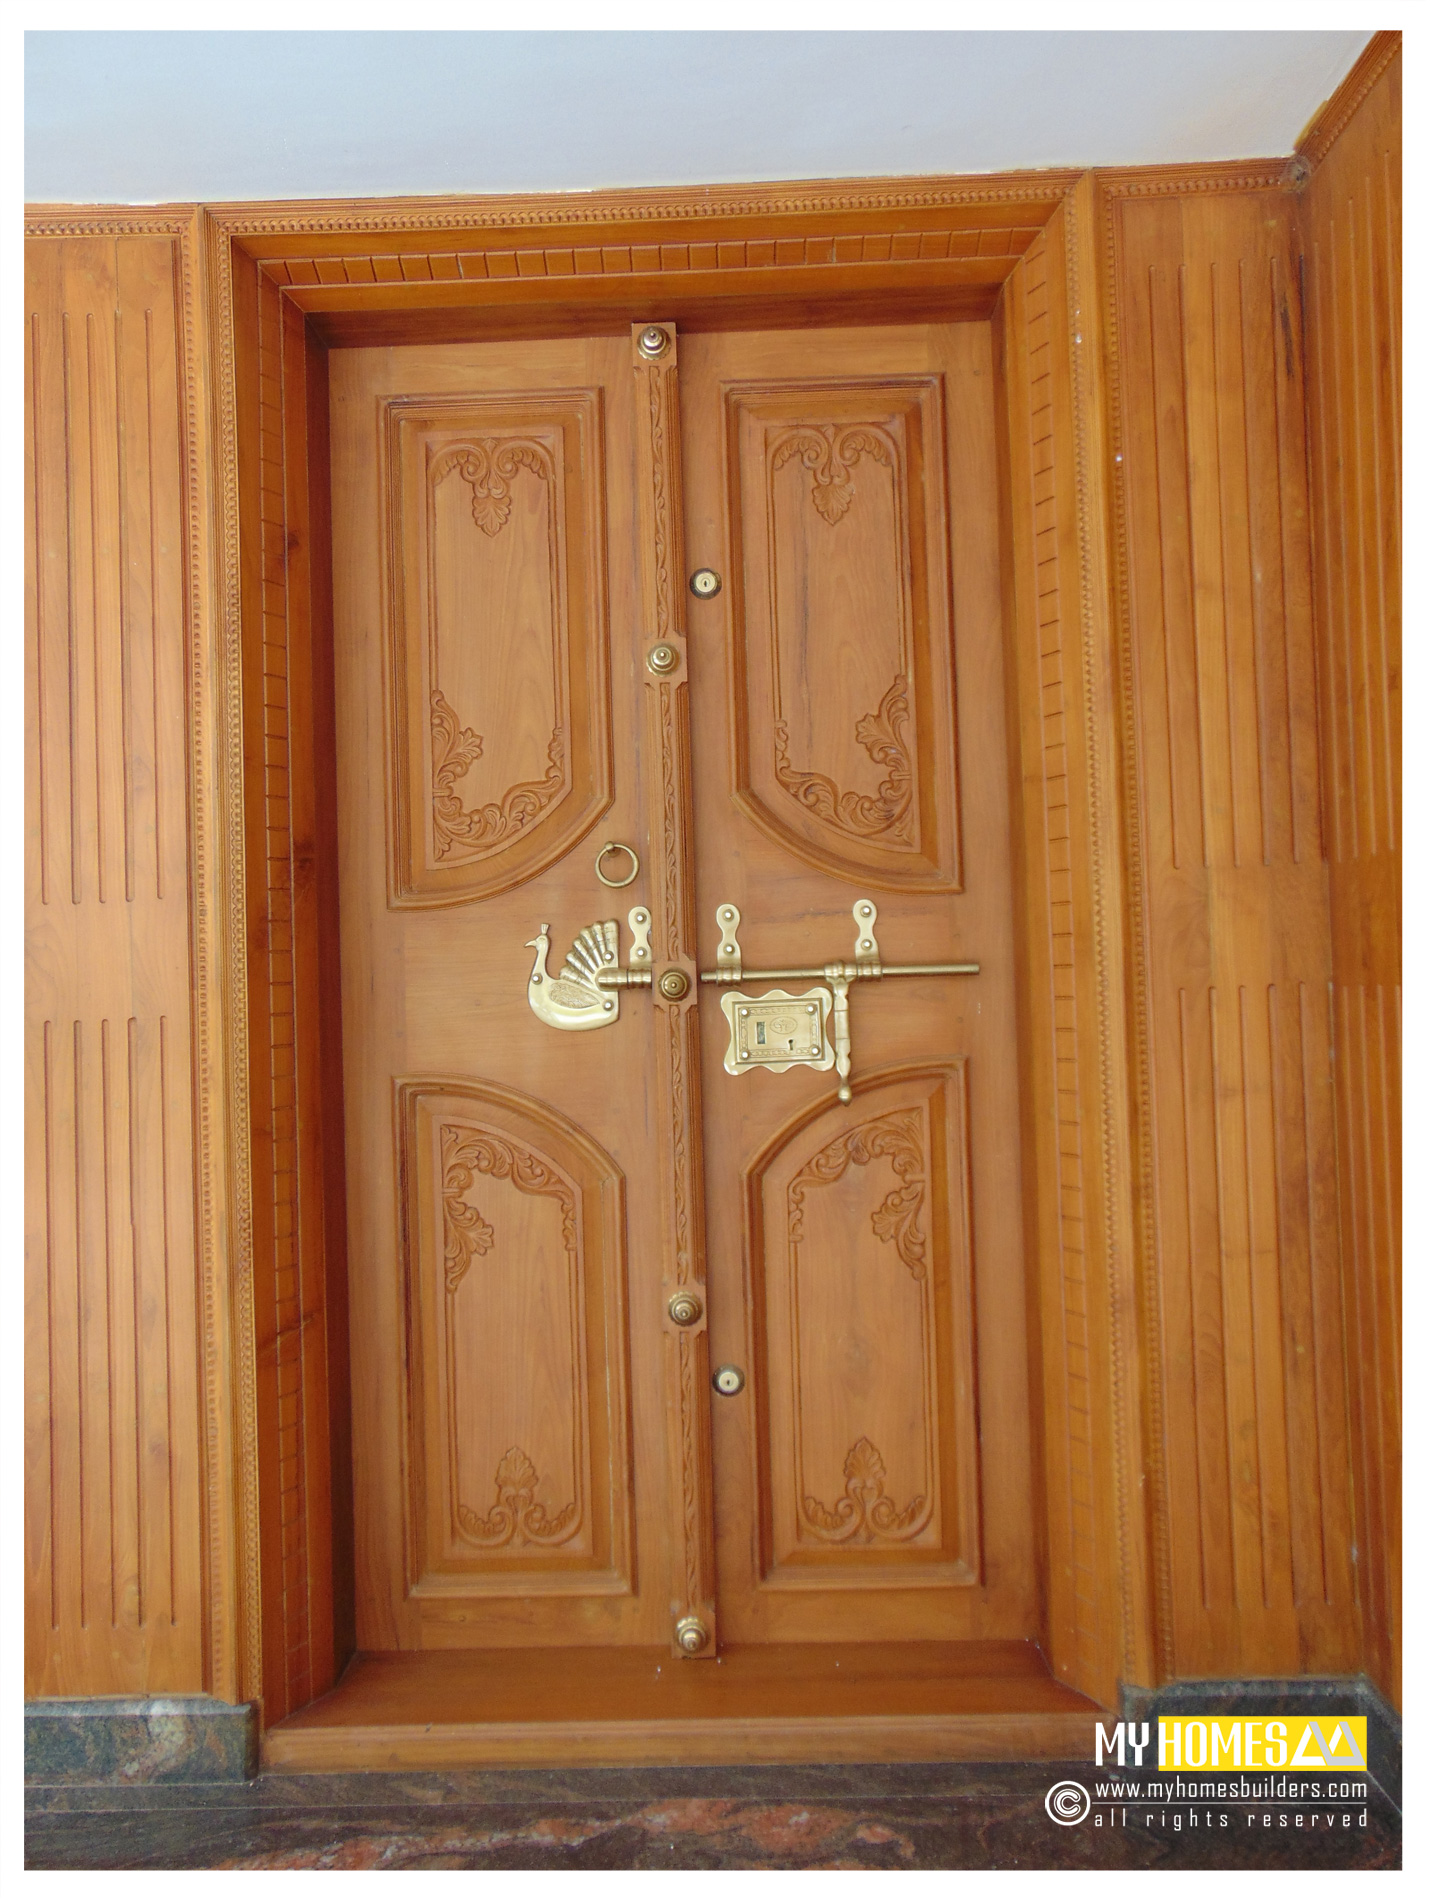 New idea for homes main door designs in kerala india for Single door designs for indian homes